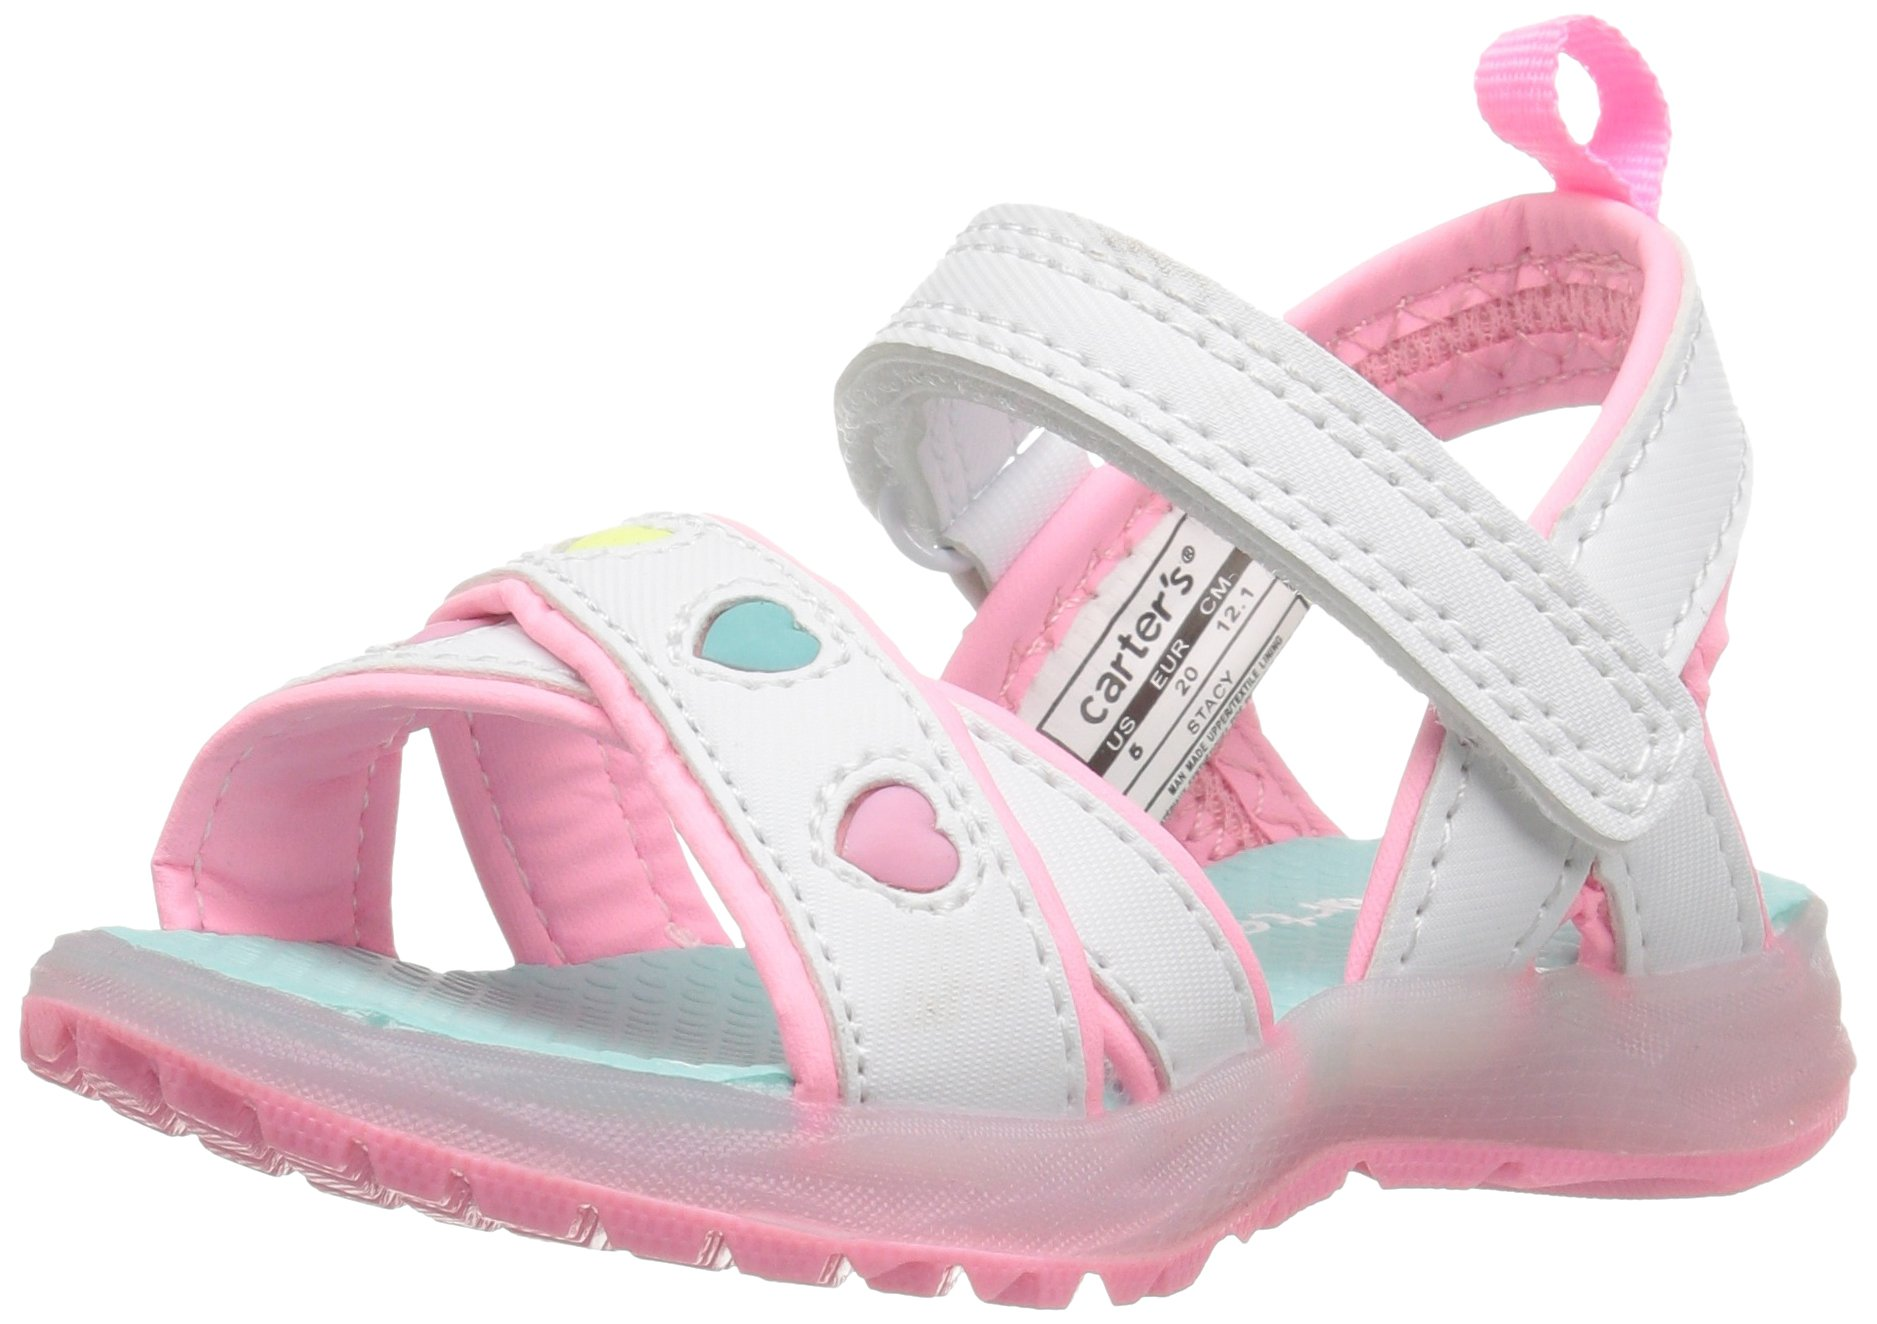 604cec81dec8 Best Rated in Baby Girls  Sandals   Helpful Customer Reviews ...